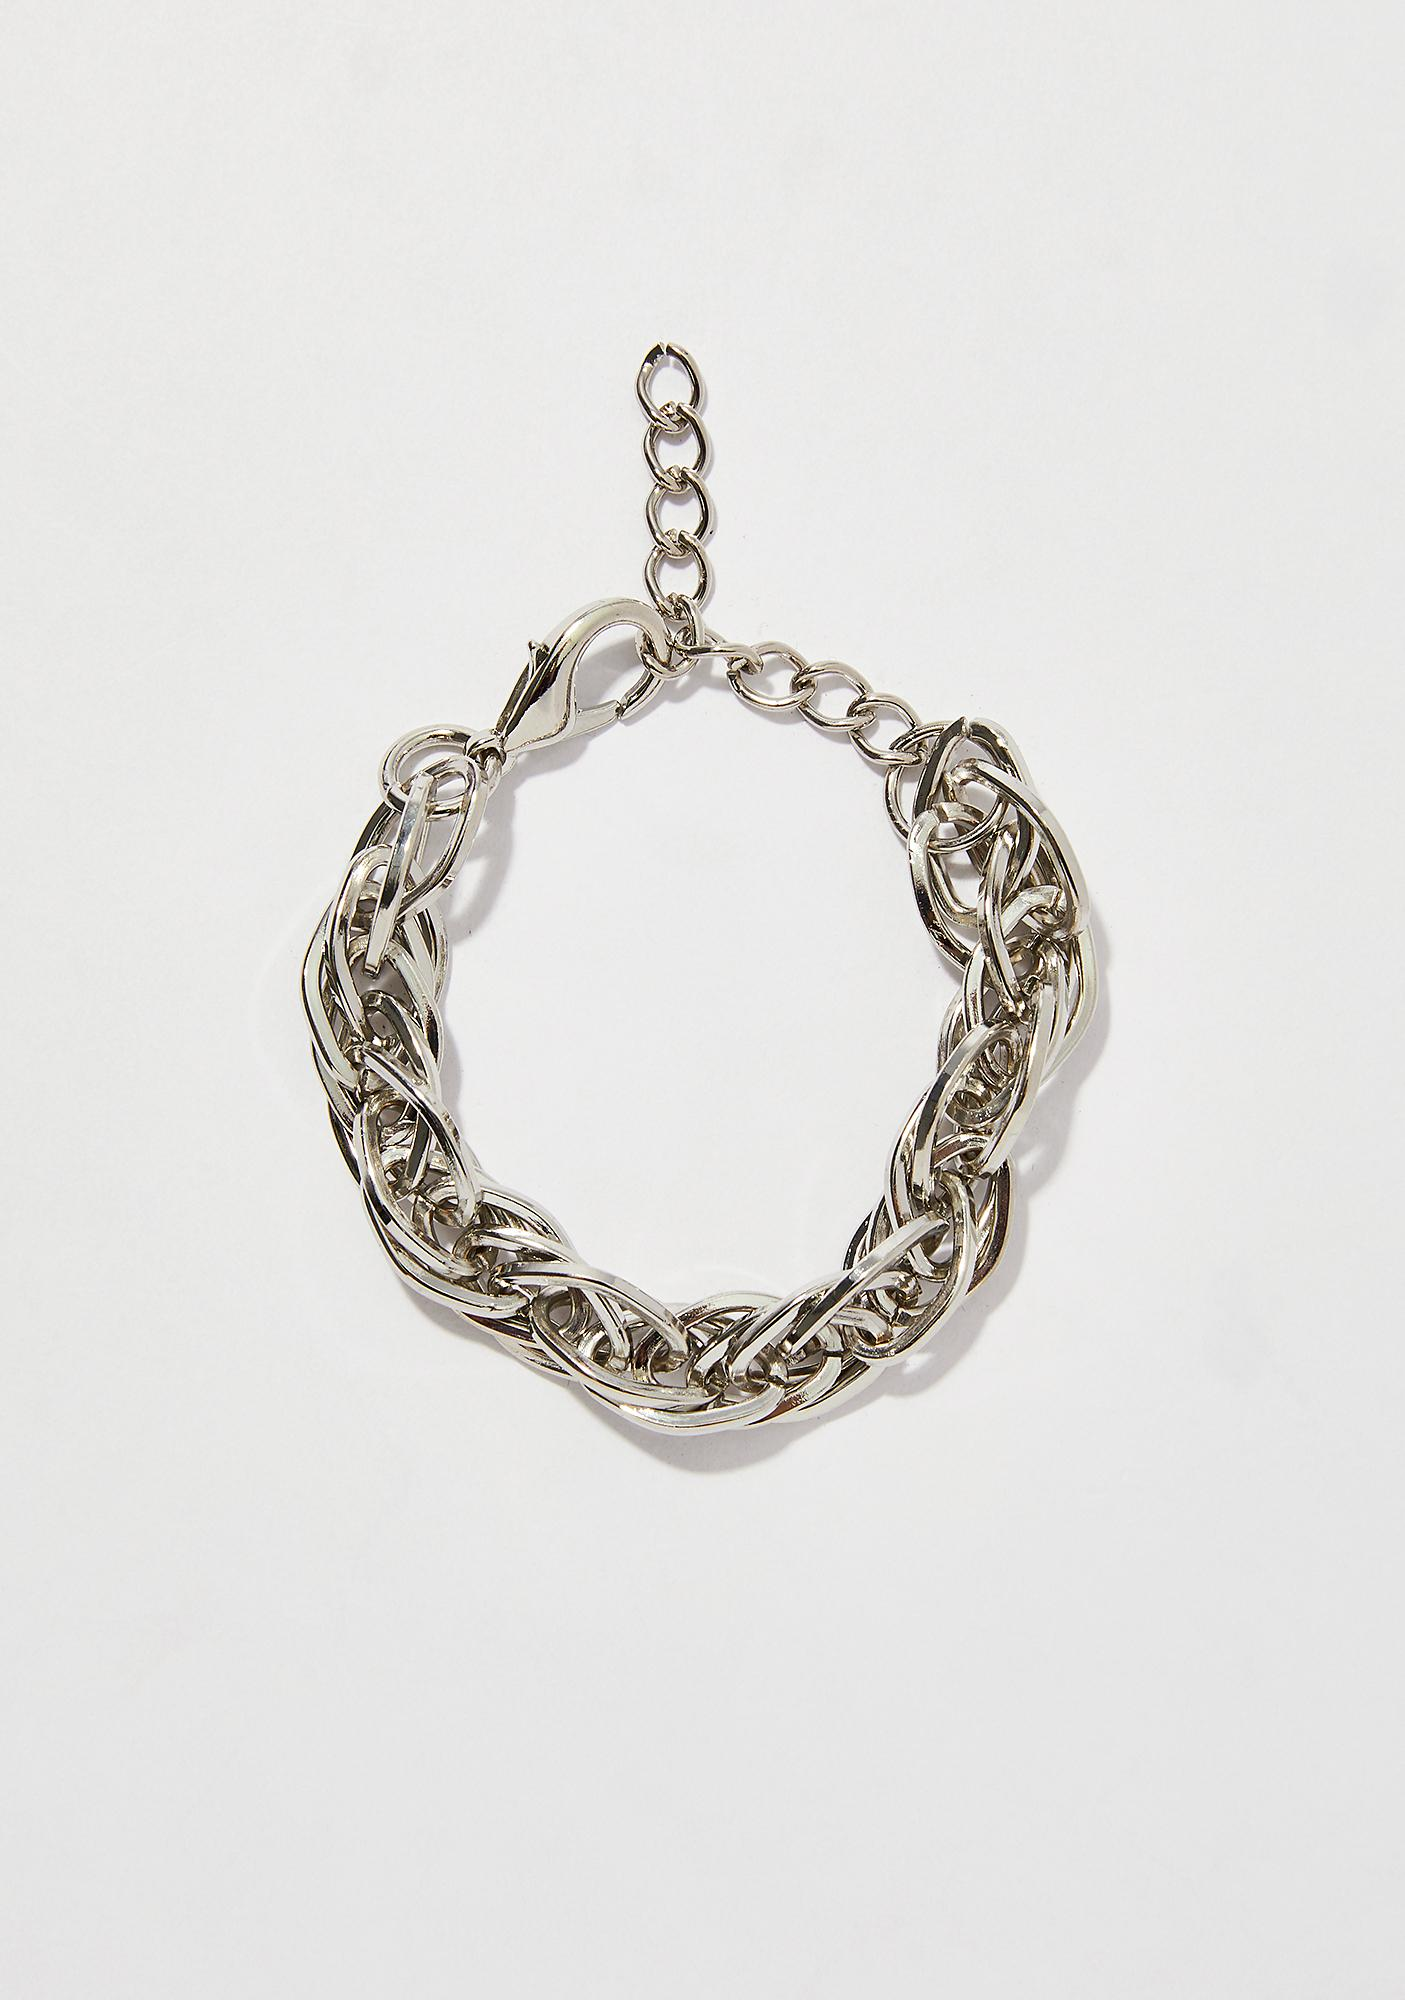 Let's Link Up Chain Bracelet